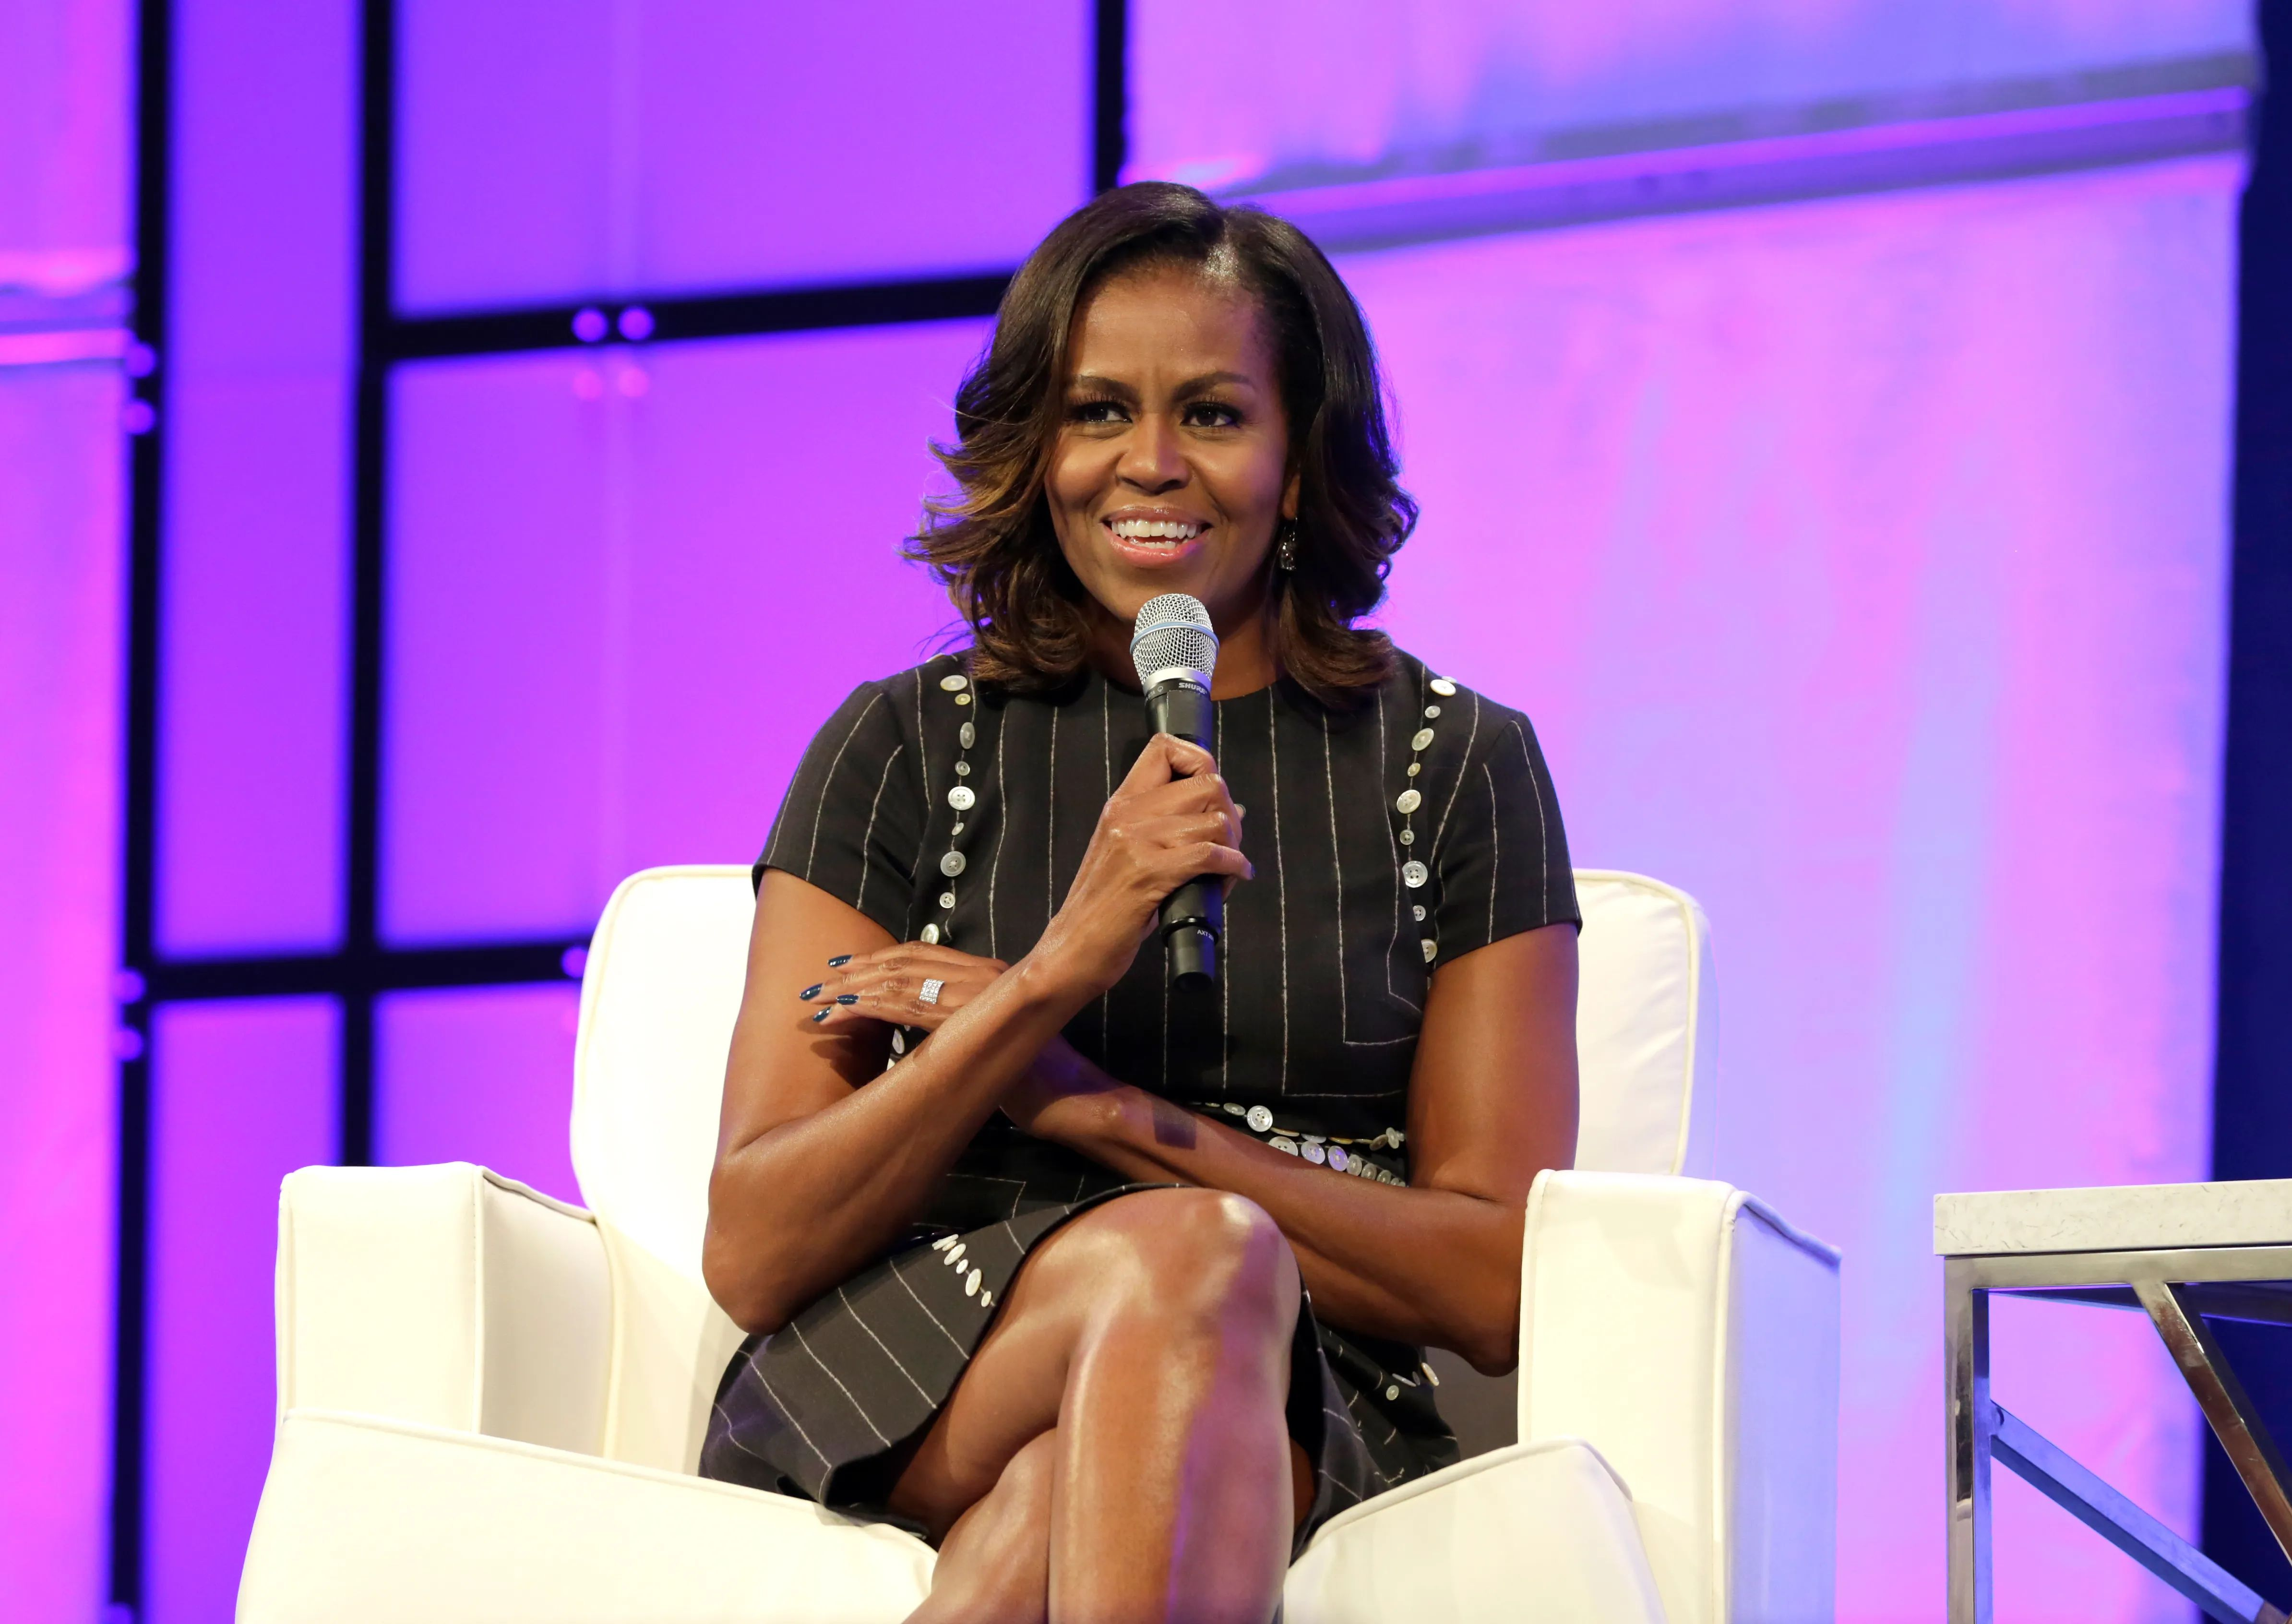 Prodigious! Michelle Obama Says Men Can't Be Bystanders When It Comes To Sexual Misconduct